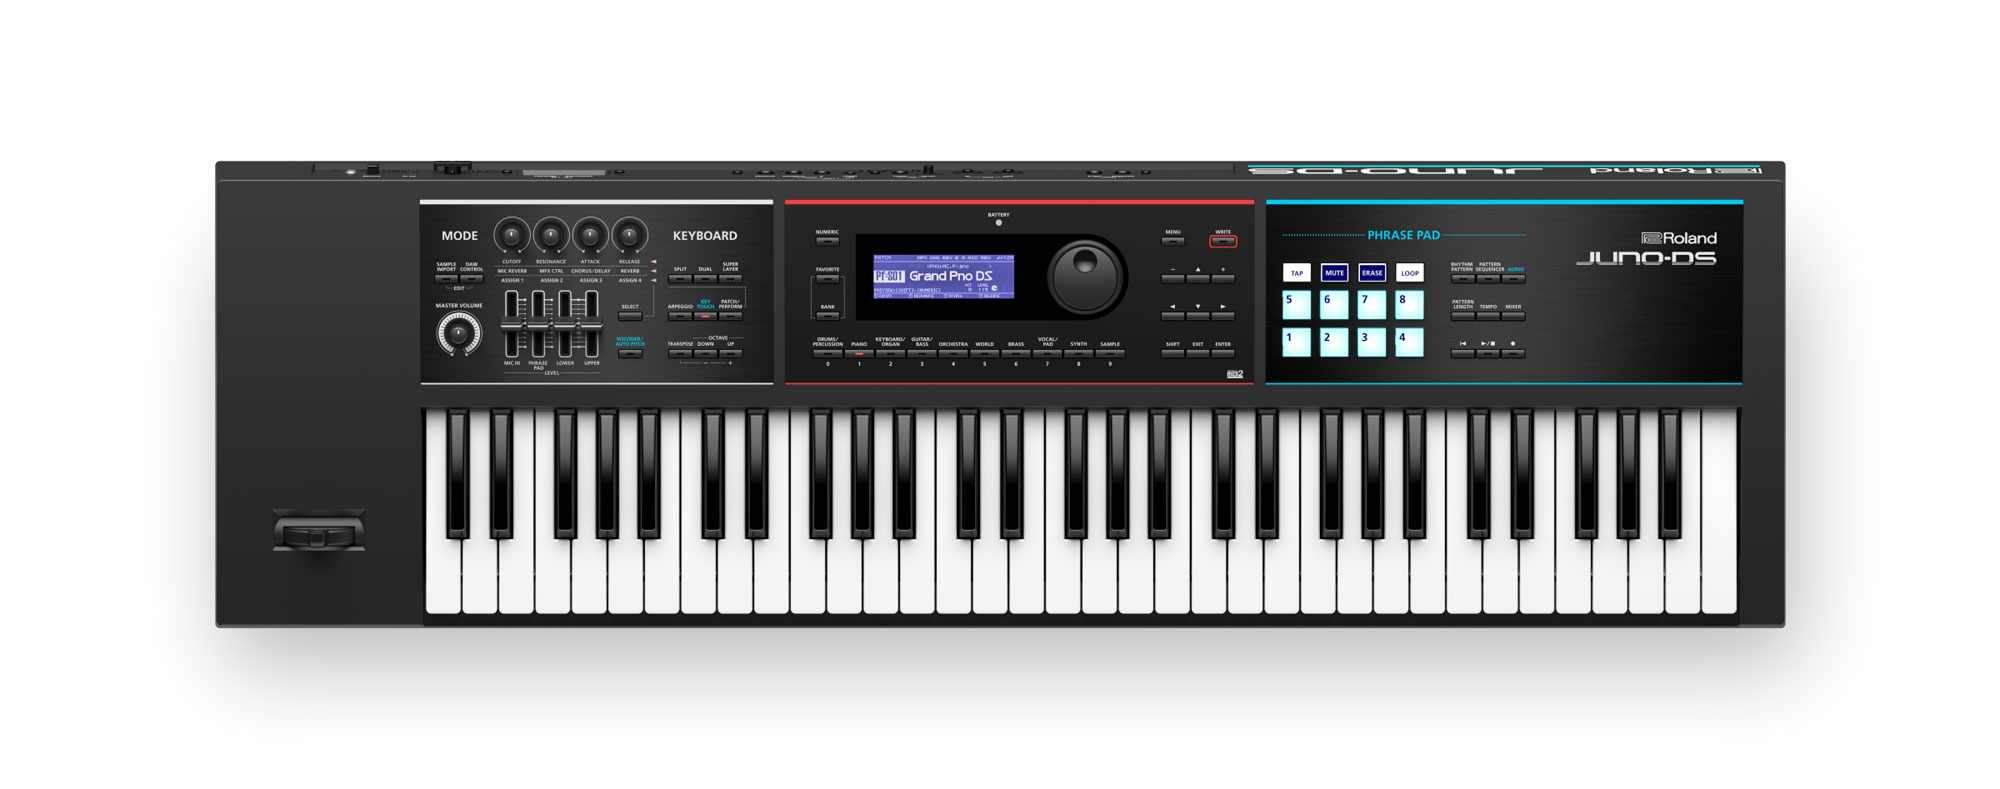 Roland - JUNO-DS | Synthesizer